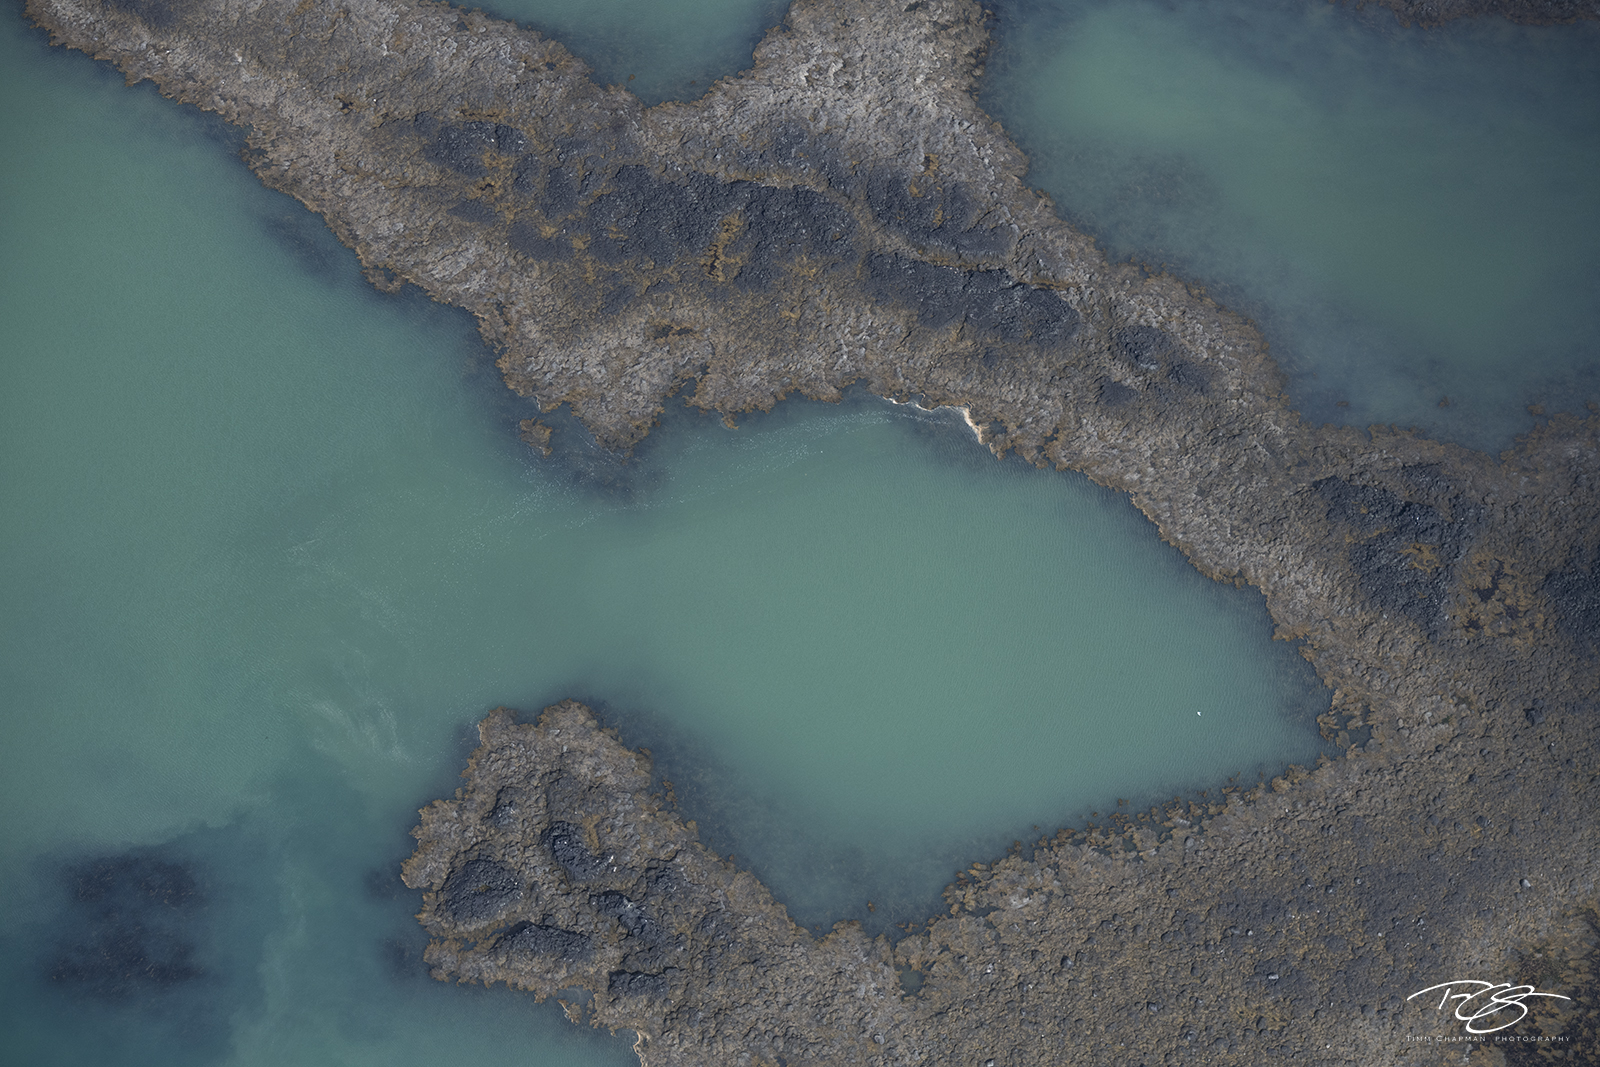 Aerial abstract photograph of Iceland's coral reef